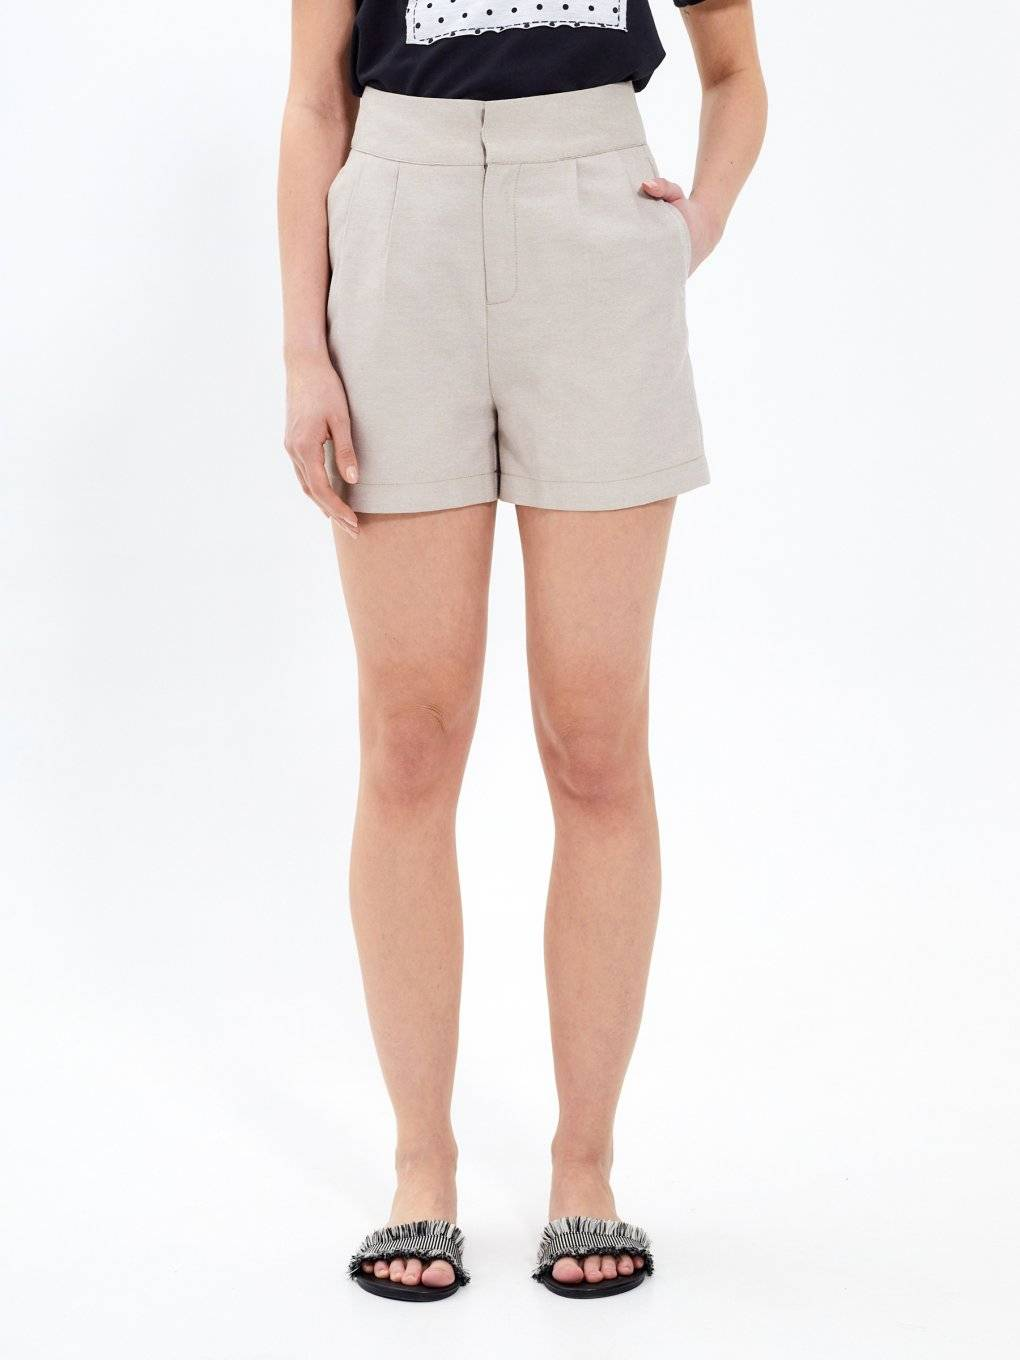 Highwaisted shorts